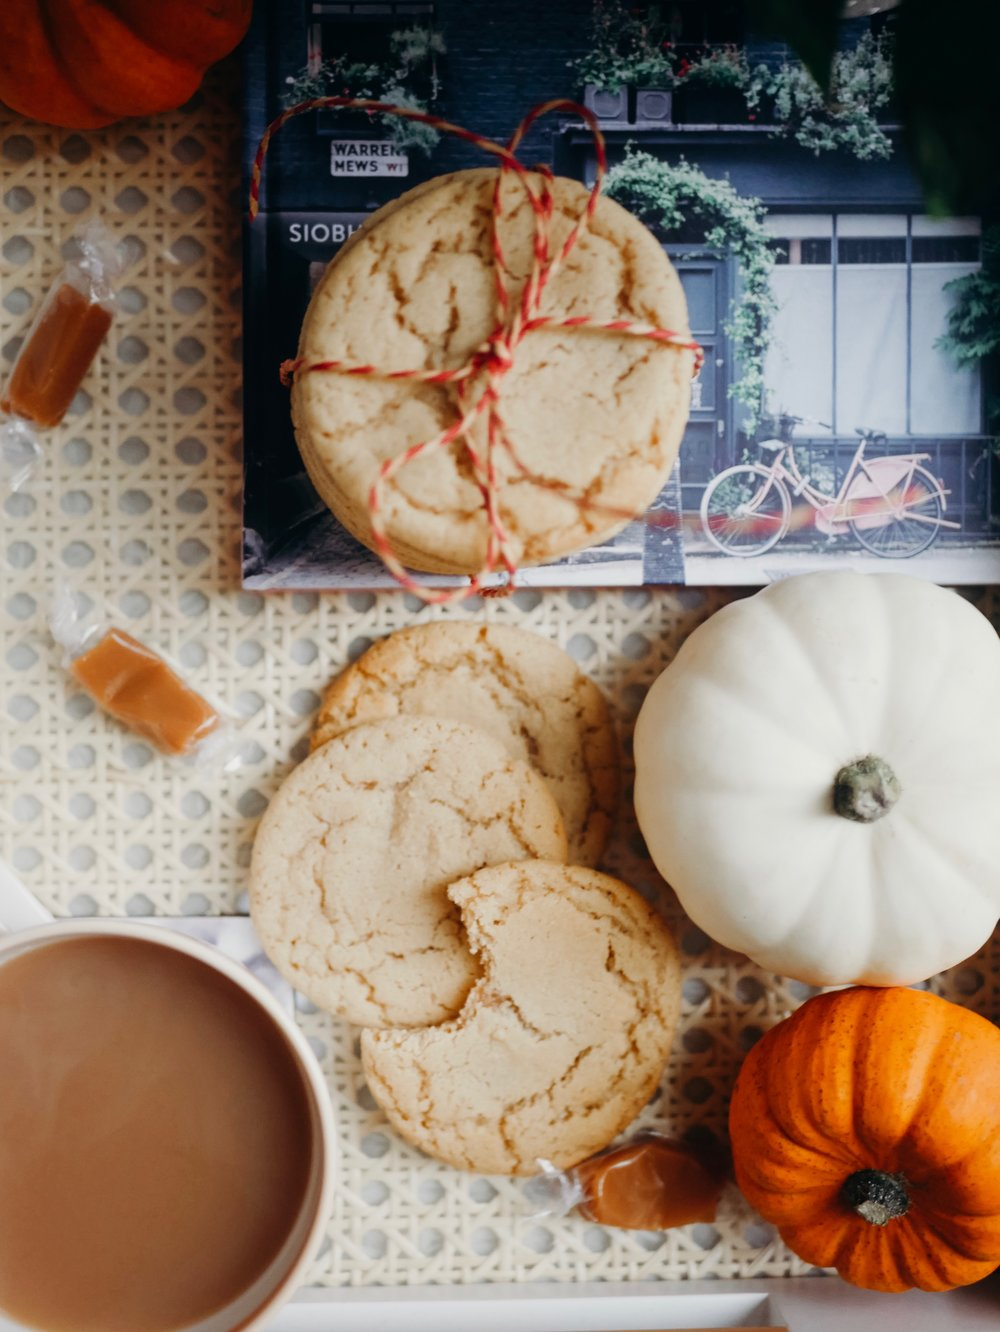 2019 Autumn Bucket List - Bake Seasonal Treats for Our New Neighbours